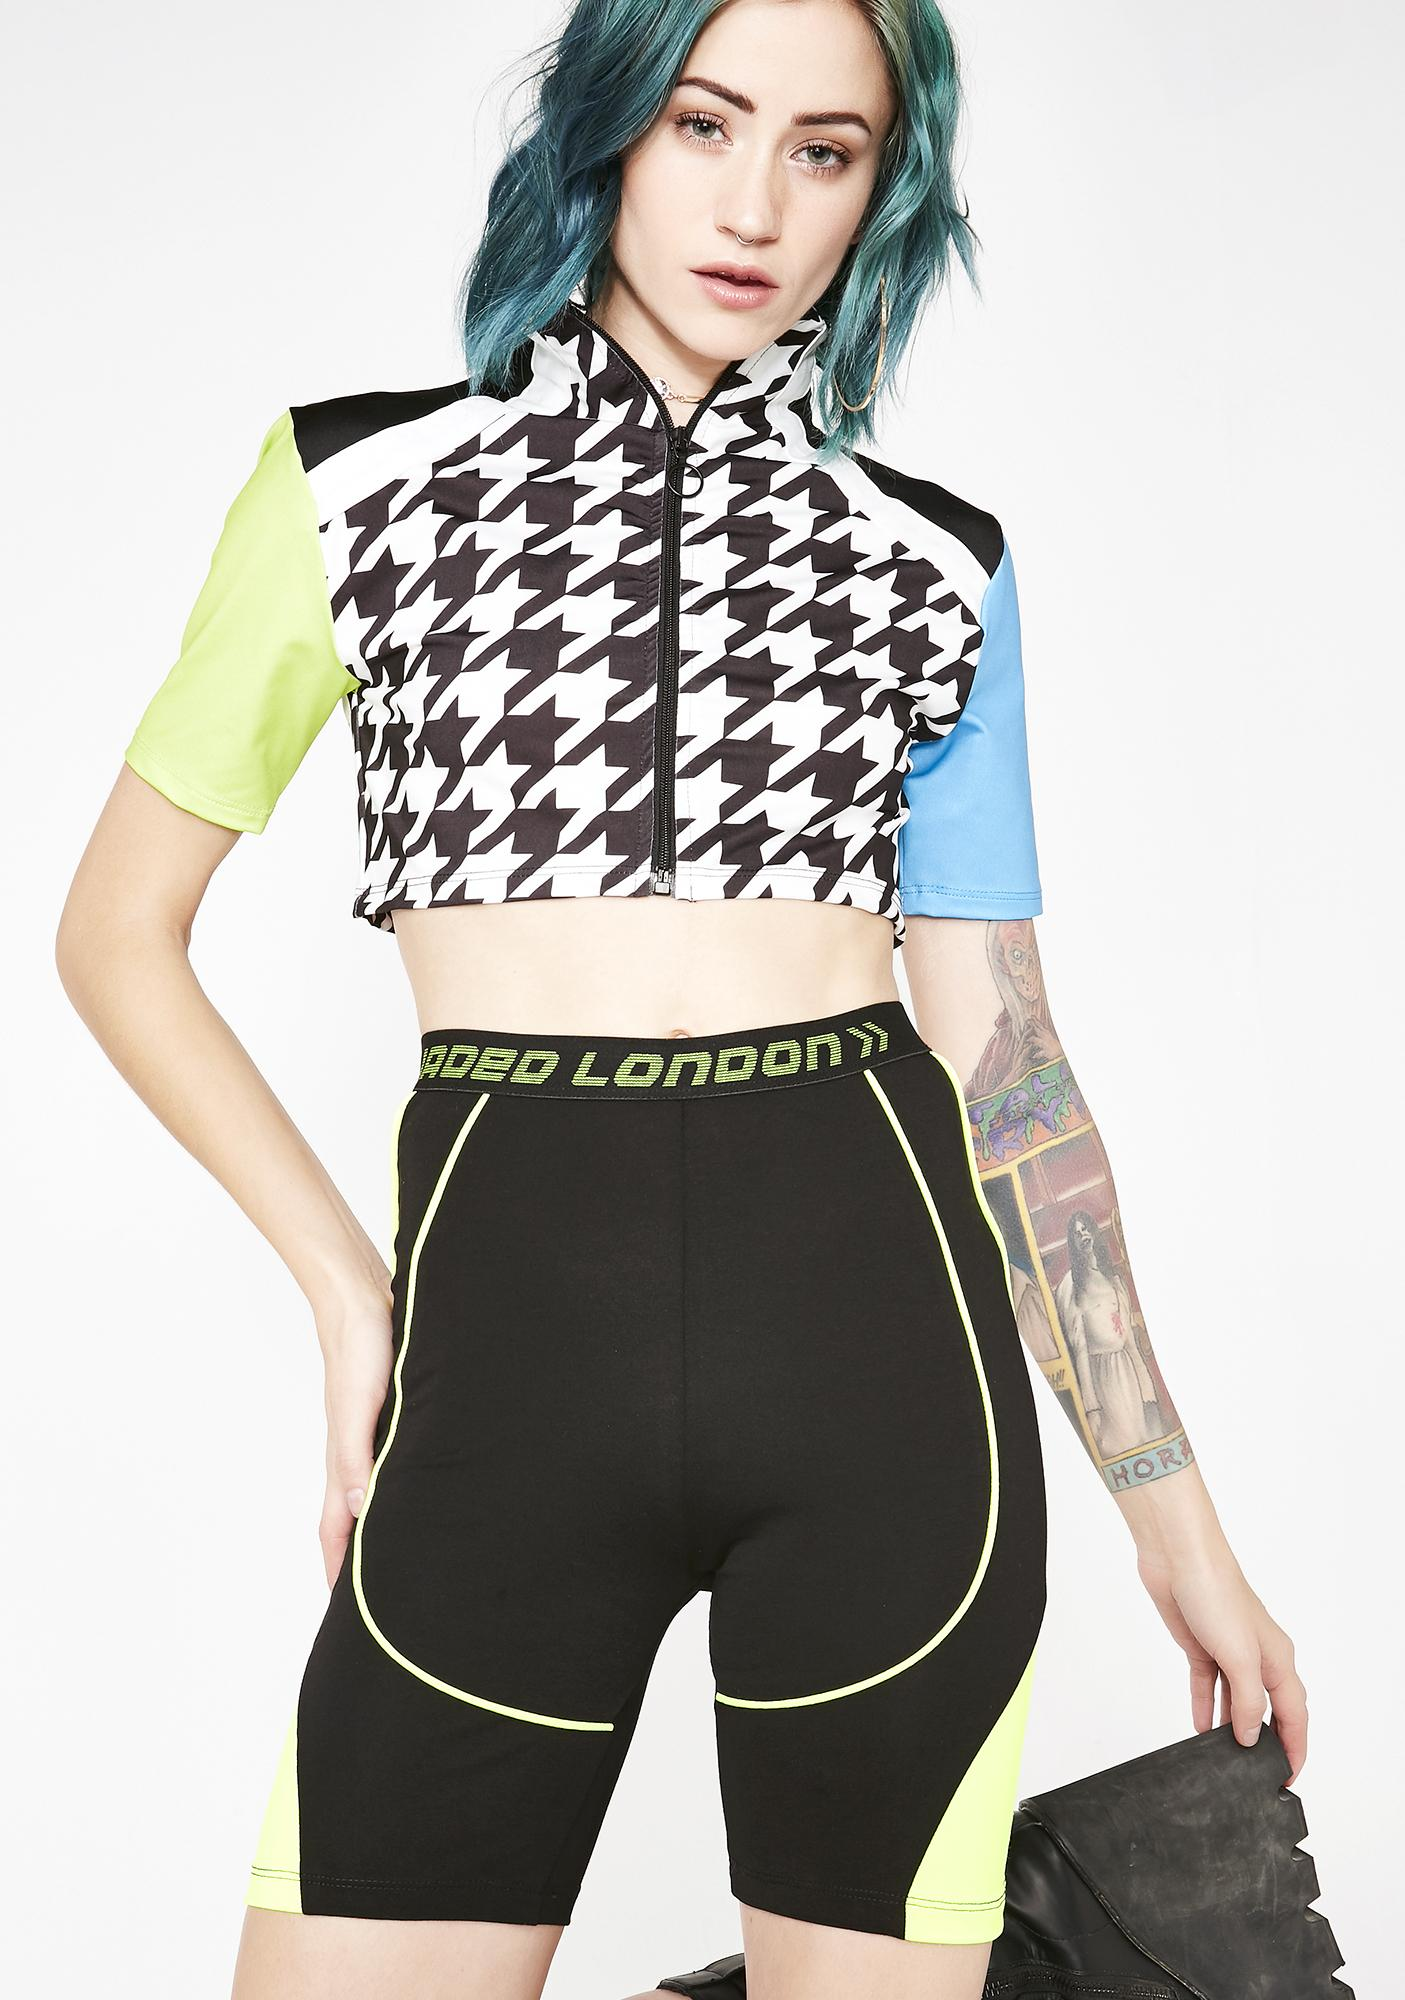 Jaded London Neon Panelled Cycling Shorts